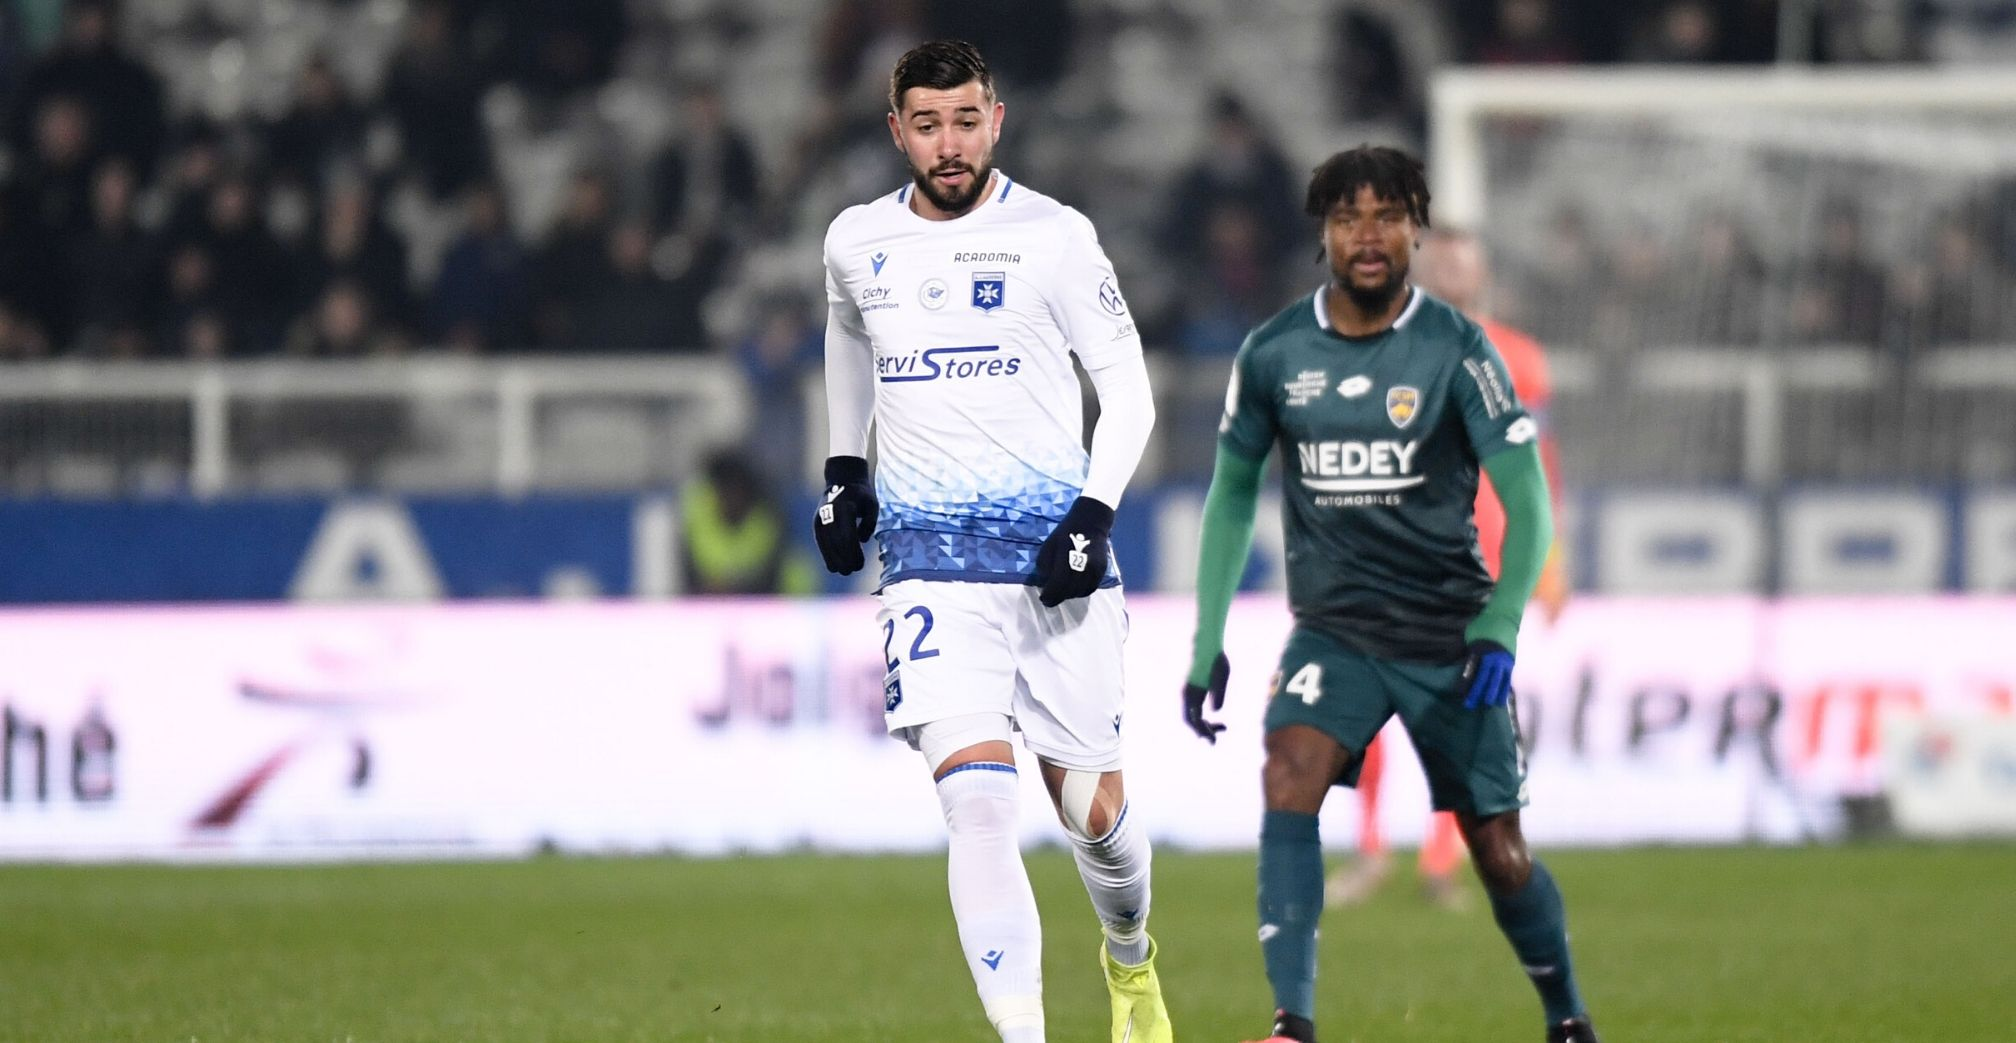 AJ Auxerre vs Clermont Foot Free Betting Tips